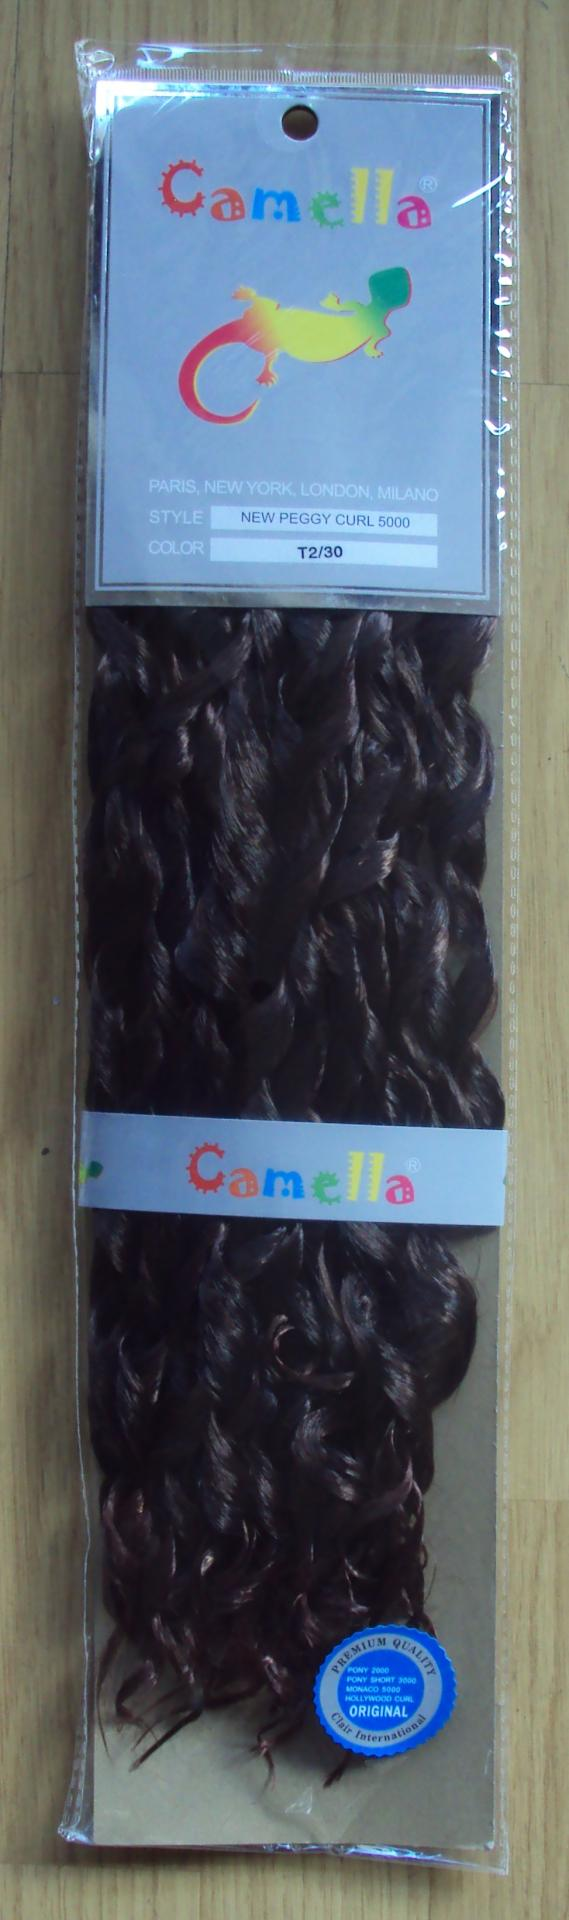 Camella new peggy curl 5000